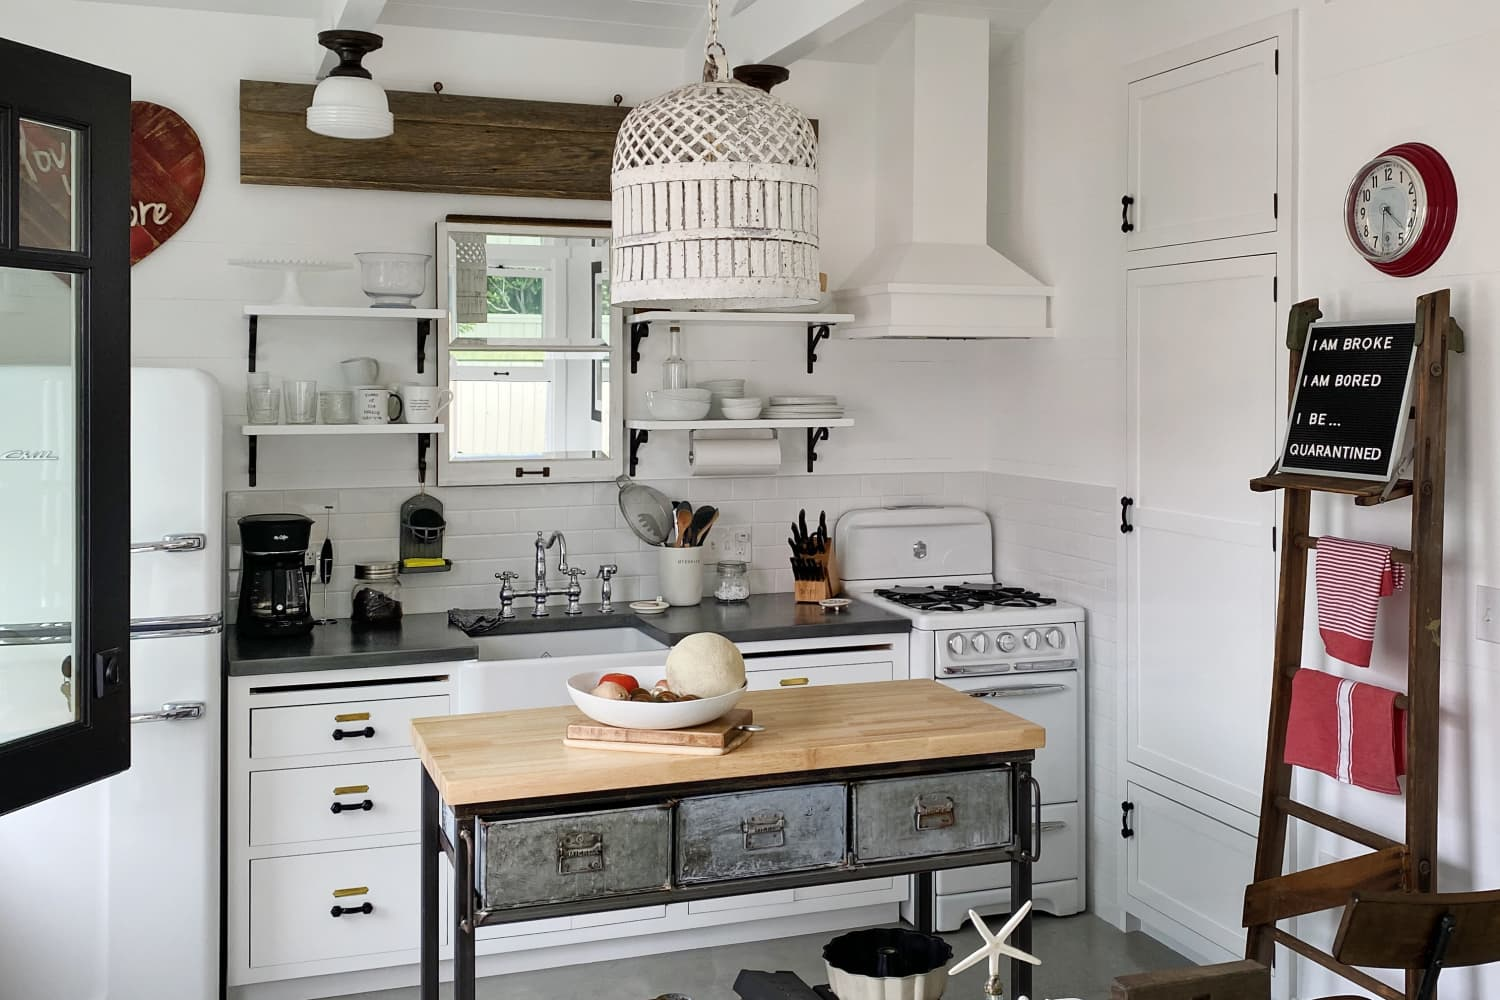 3 Brilliant Storage Ideas to Steal from This 421-Square-Foot Tiny Home Built in a Former Garage